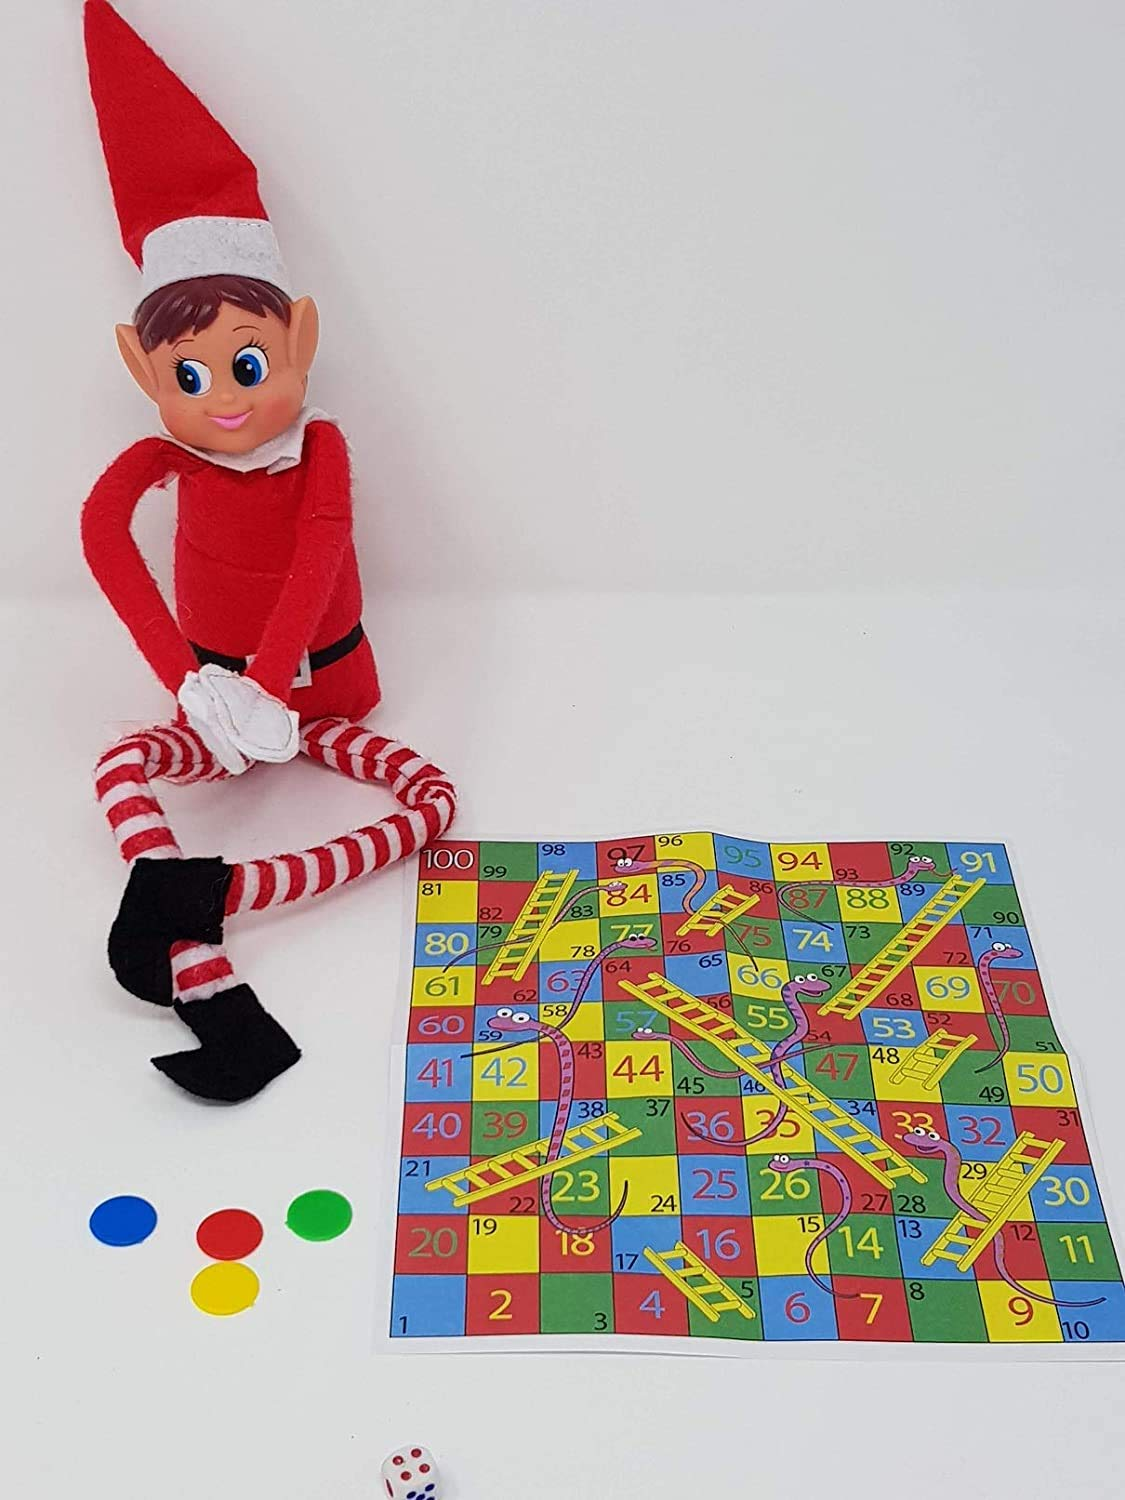 Elf GAMES Accessories - Christmas Decoration Joke Sized Snakes & Ladders